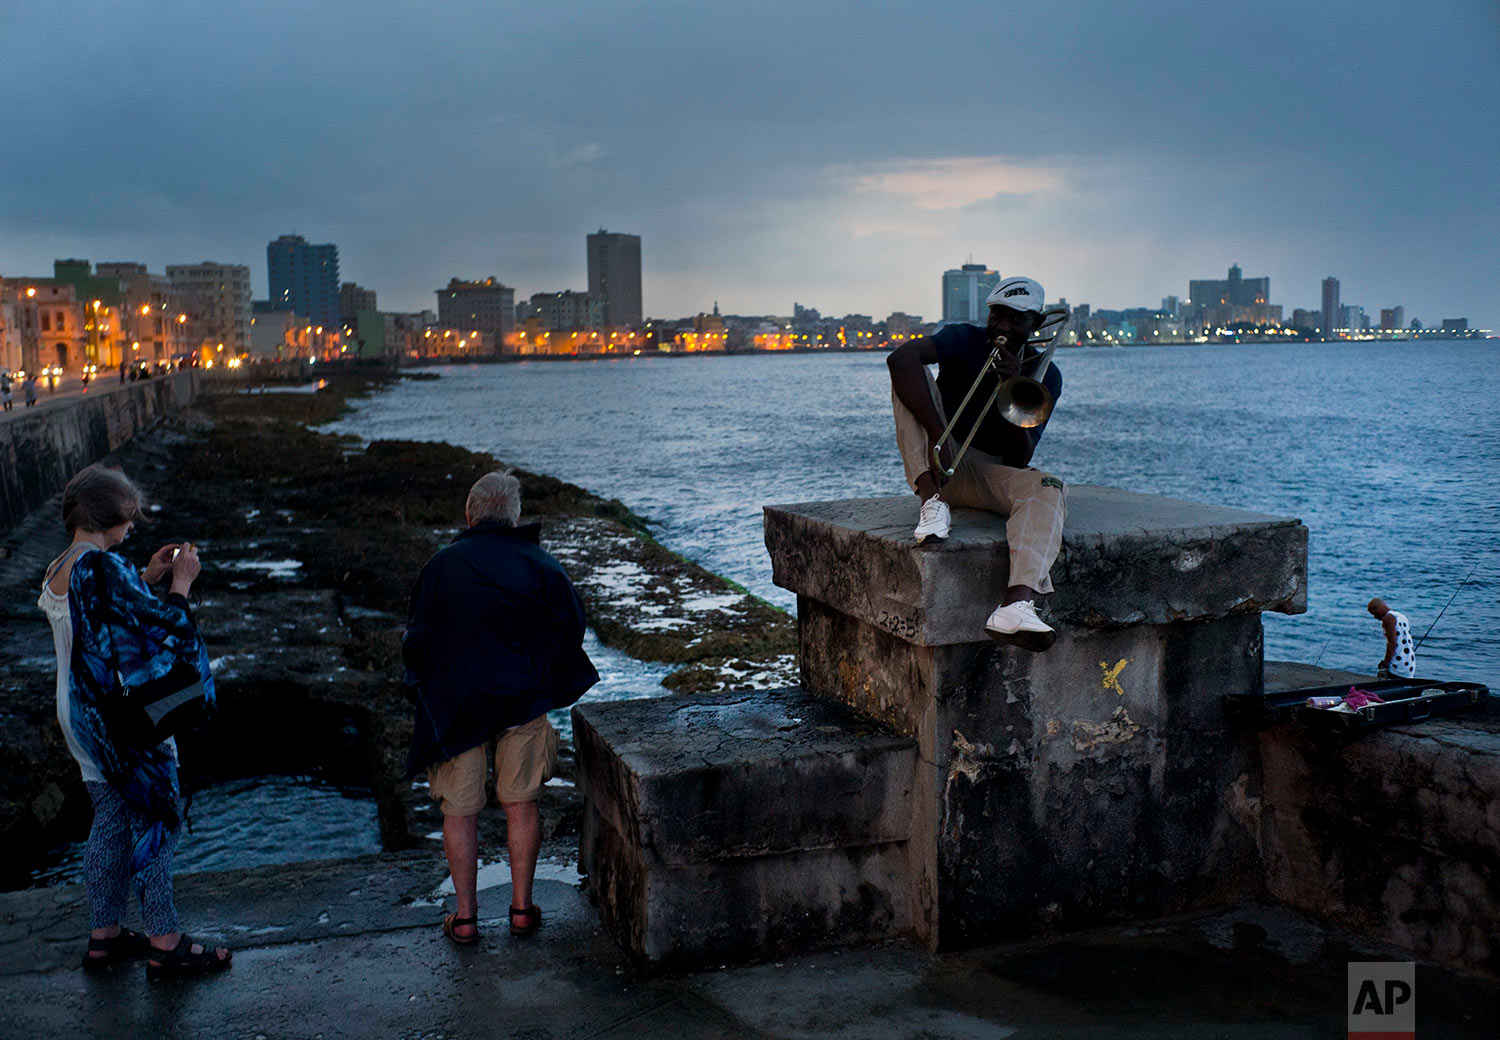 """In this April 13, 2018 photo, musician Lazaro Martinez poses with his trombone on the Malecon sea wall in Havana, Cuba. Since 1991, Martinez has regularly played his music at the Malecon. """"My politics are music,"""" said the 52-year-old. (AP Photo/Ramon Espinosa)"""